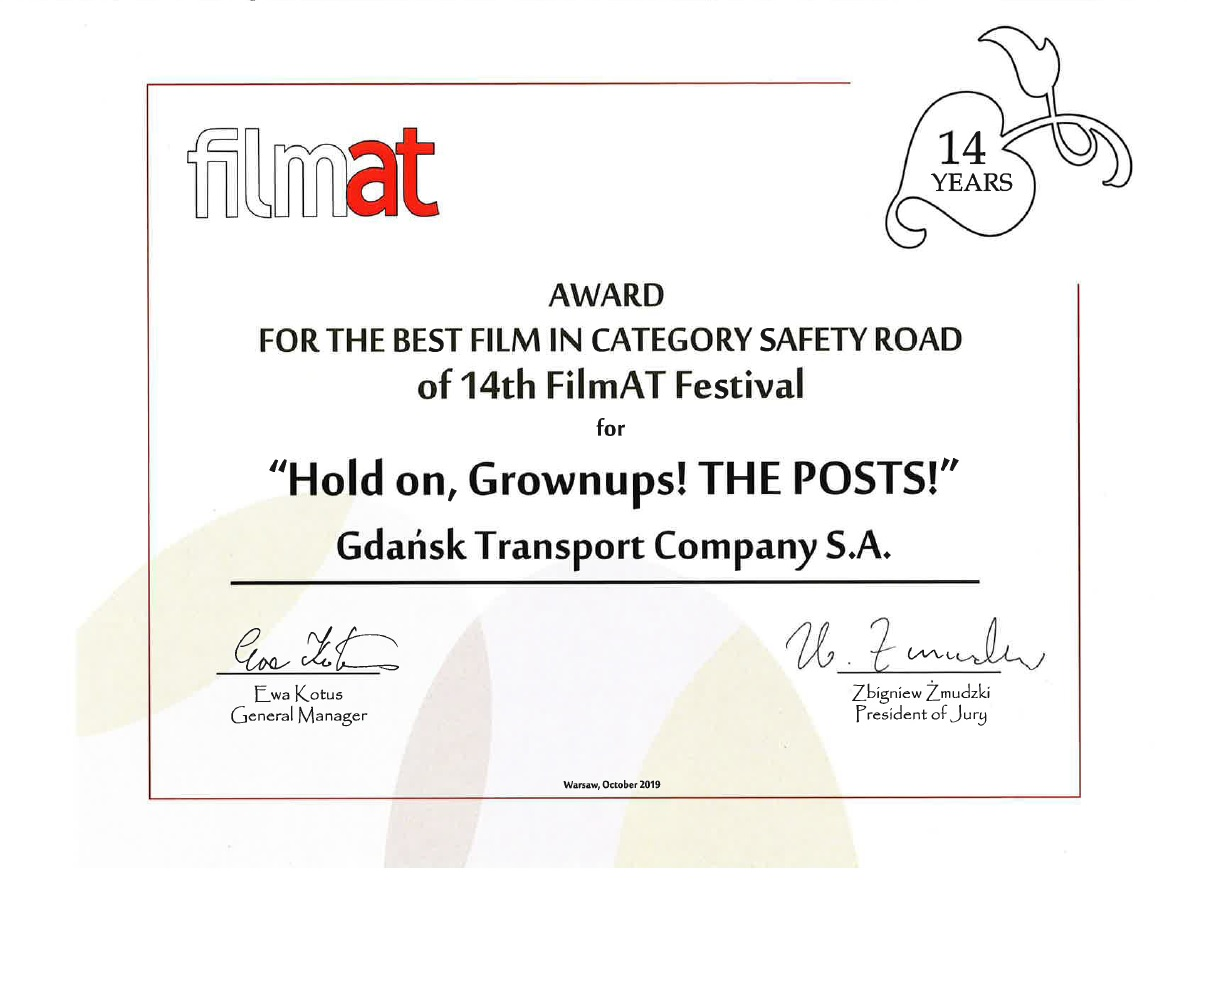 A film of the 'Hold on, grownups!' series awarded at the FilmAT Festival